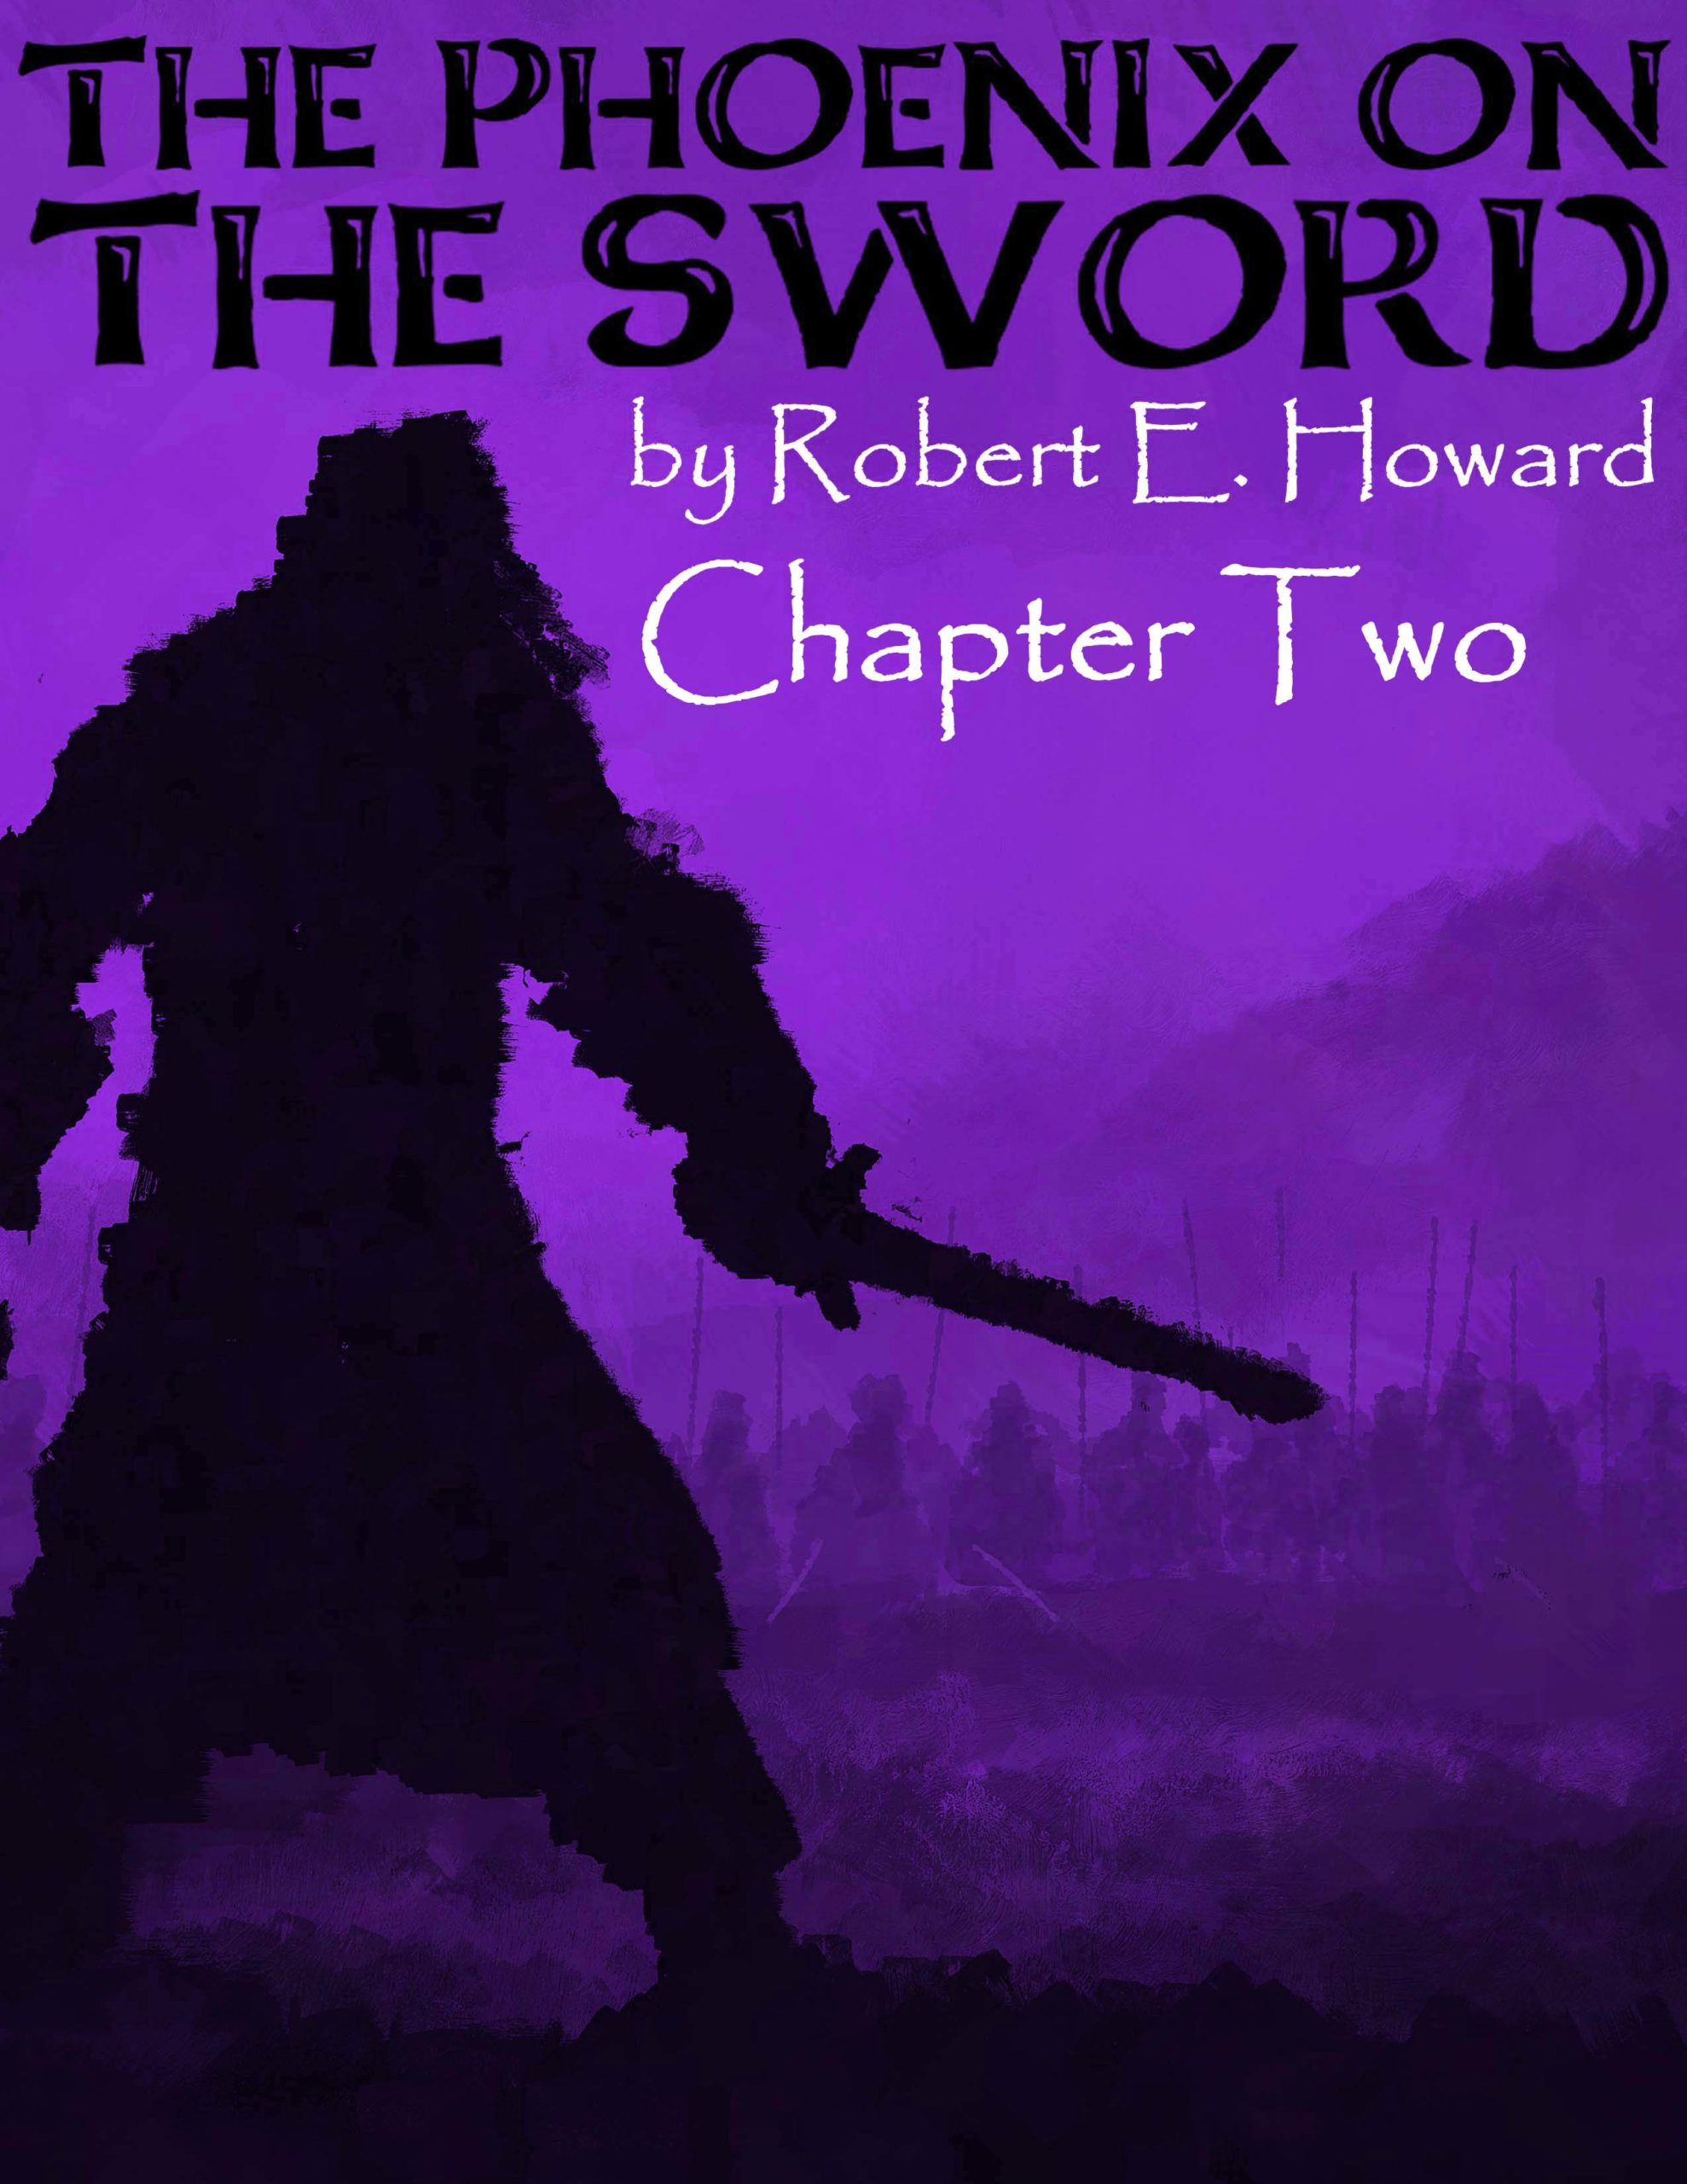 The Phoenix on the Sword Chapter 2